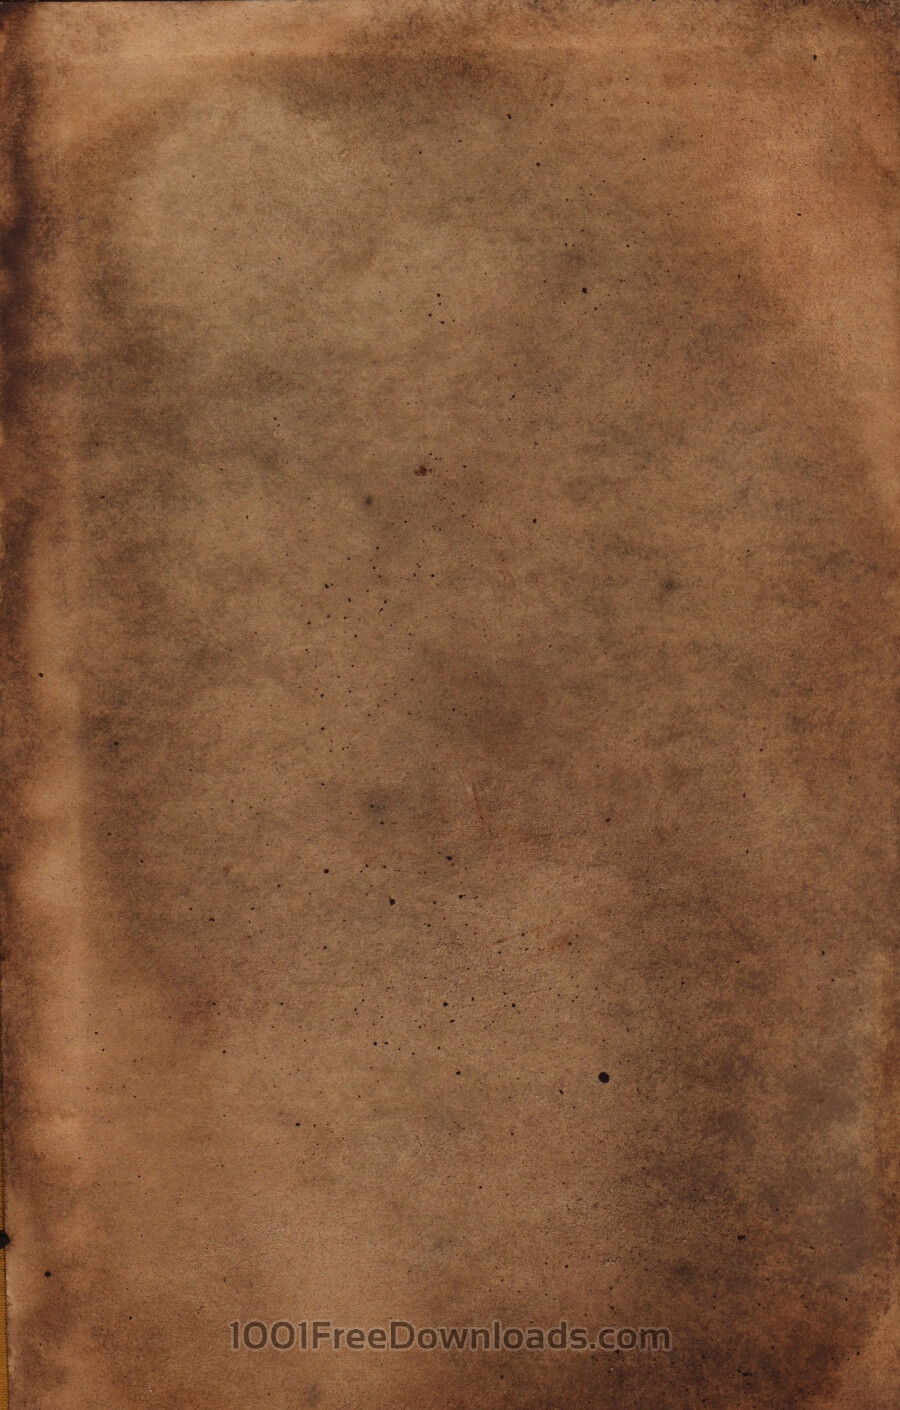 Free Textures: Coffee stained paper   Grunge